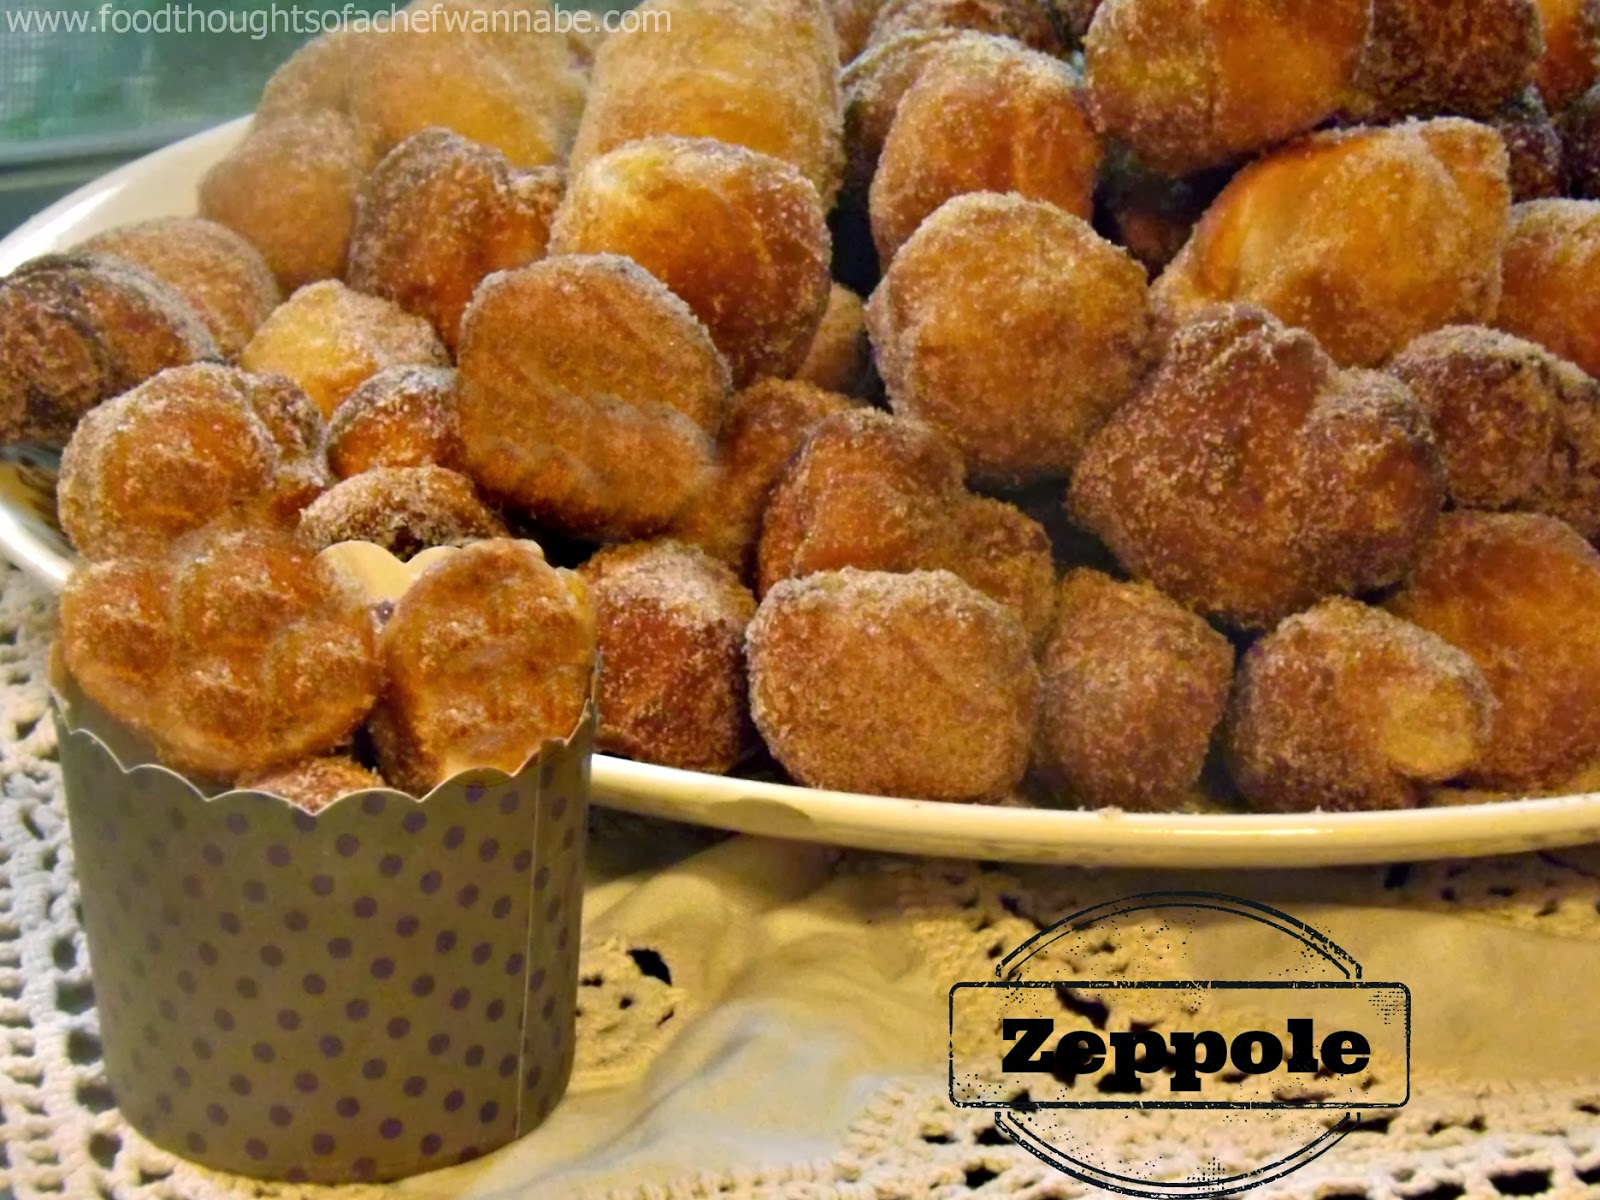 Zeppole Are The Equivalent Of Like An American Donut Hole They Are Fried Balls Of Dough Which In My Life Is Pizza Dough